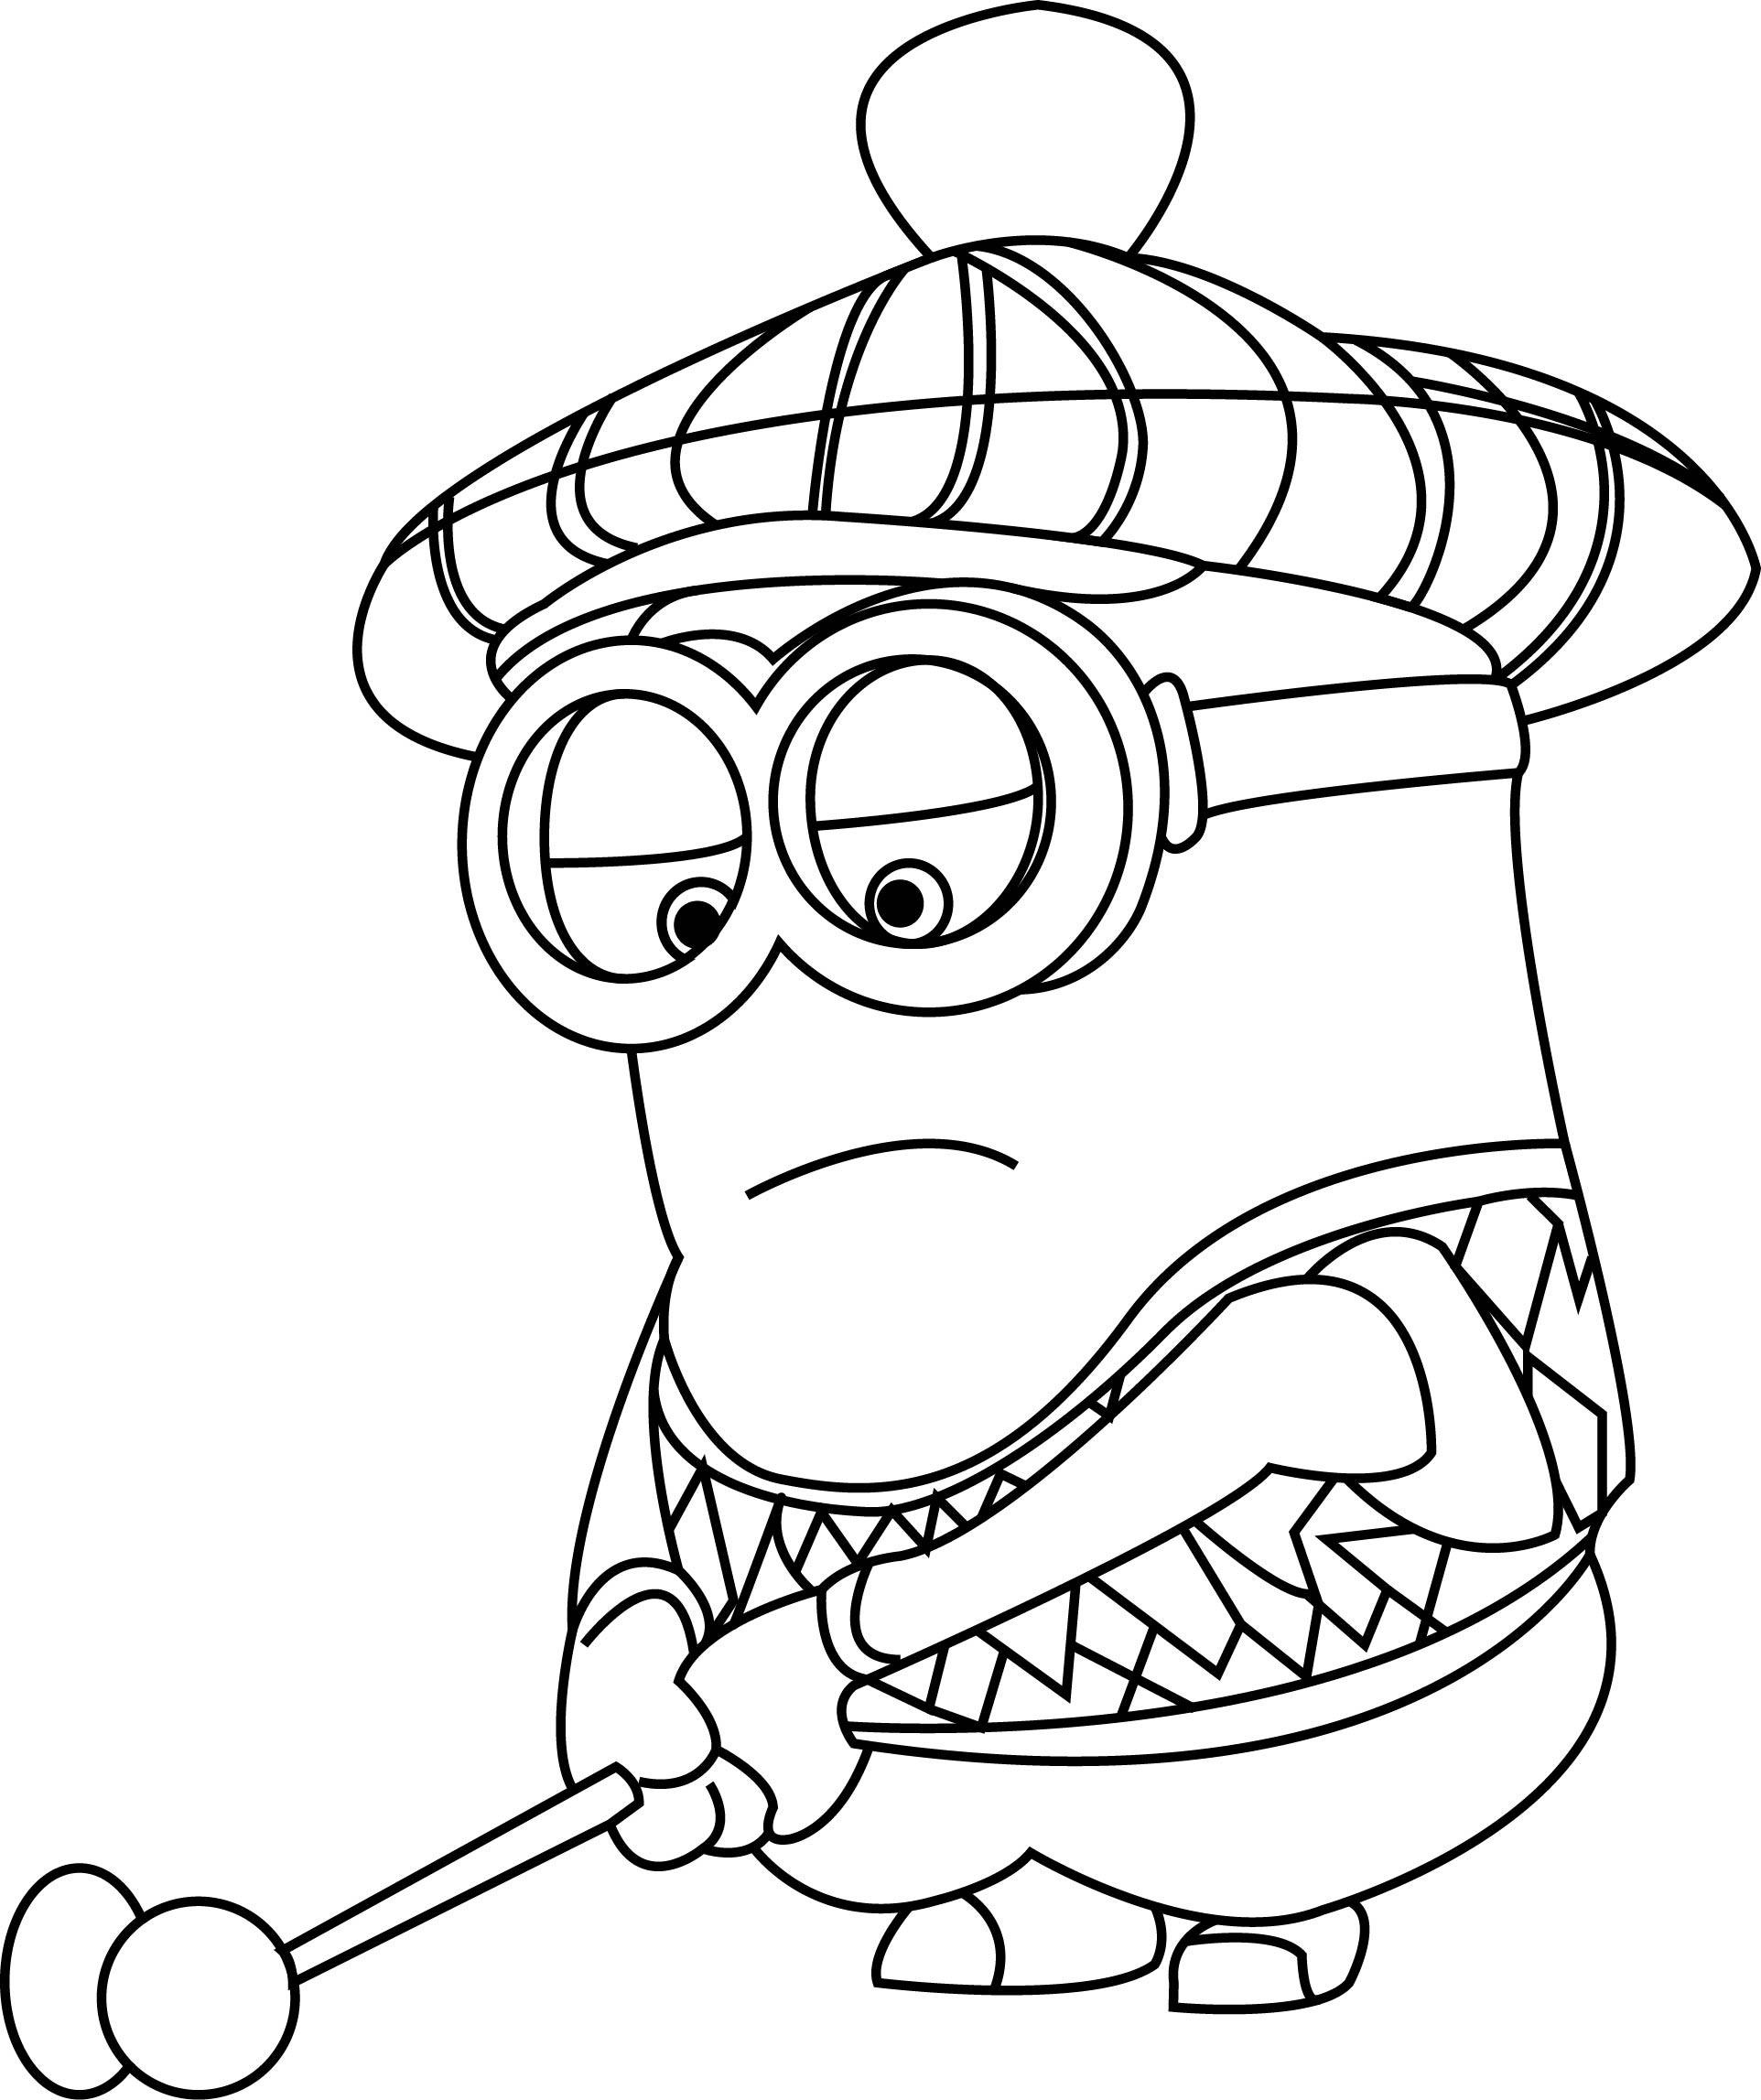 coloring page for kids childrens disney coloring pages download and print for free kids coloring for page